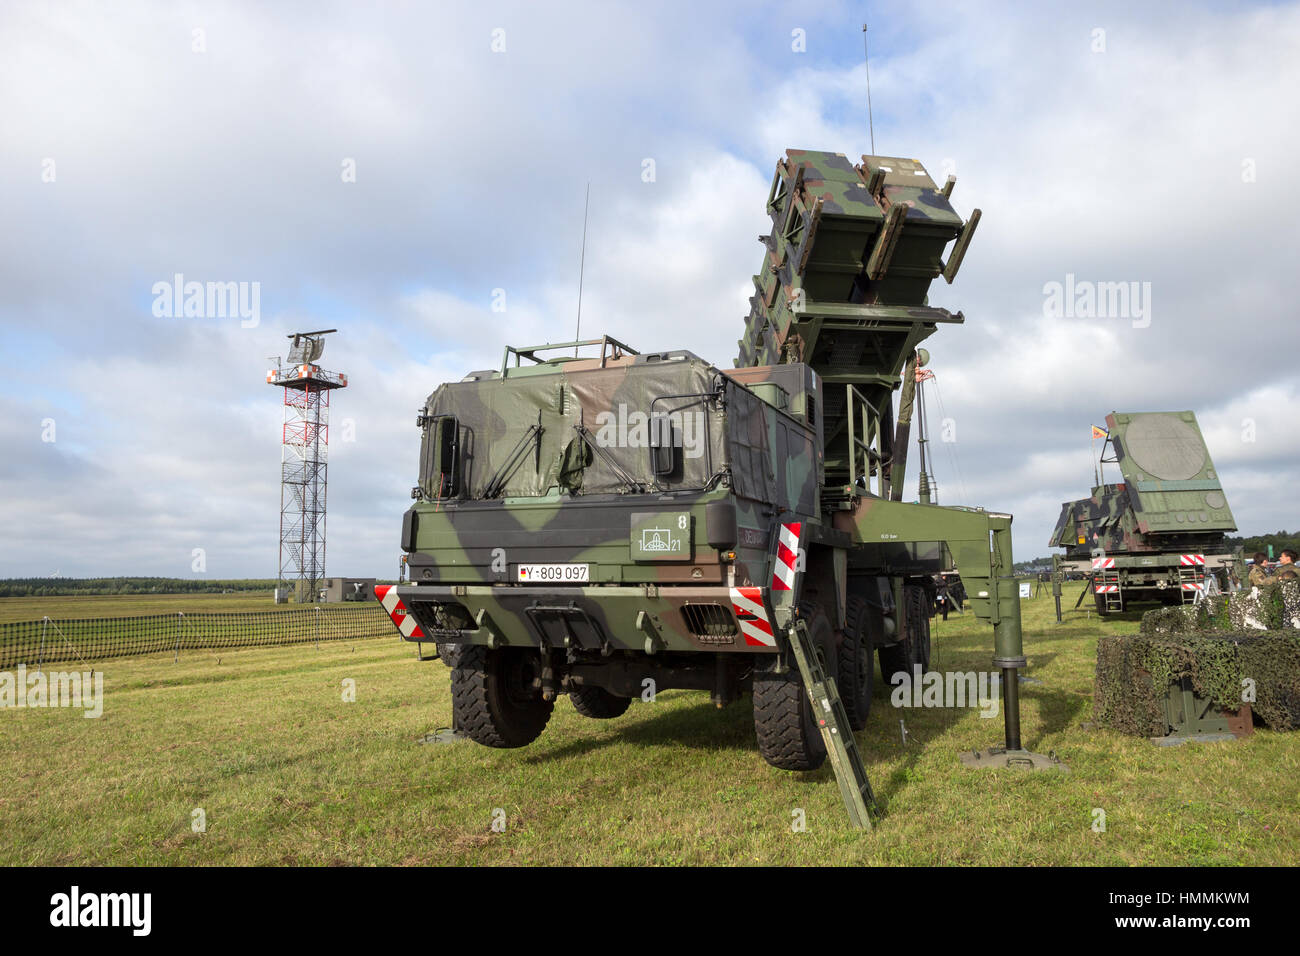 LAAGE, GERMANY - AUG 23, 2014: A German army mobile MIM-104 Patriot surface-to-air missile (SAM) system on display - Stock Image